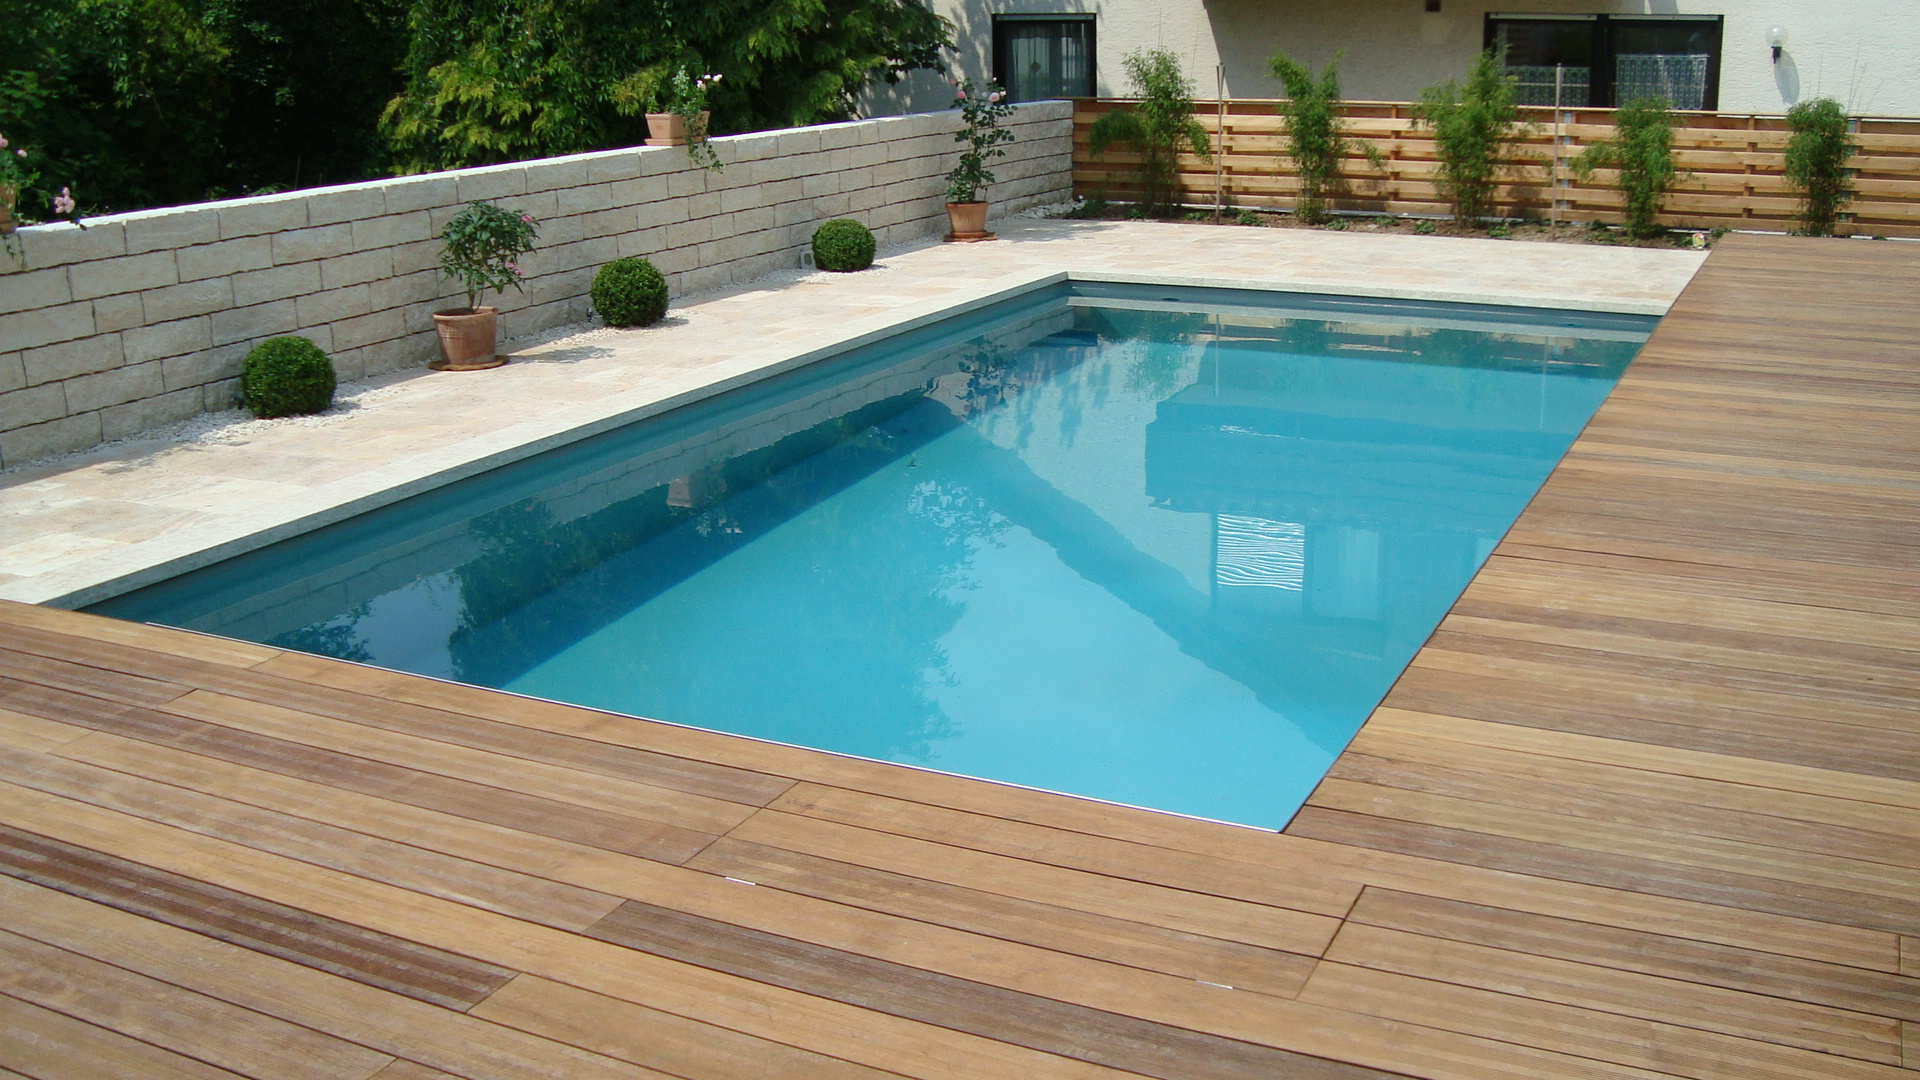 pool im garten holz swimmingpools fur den garten kaufen im holz haus de online shop design ideen. Black Bedroom Furniture Sets. Home Design Ideas